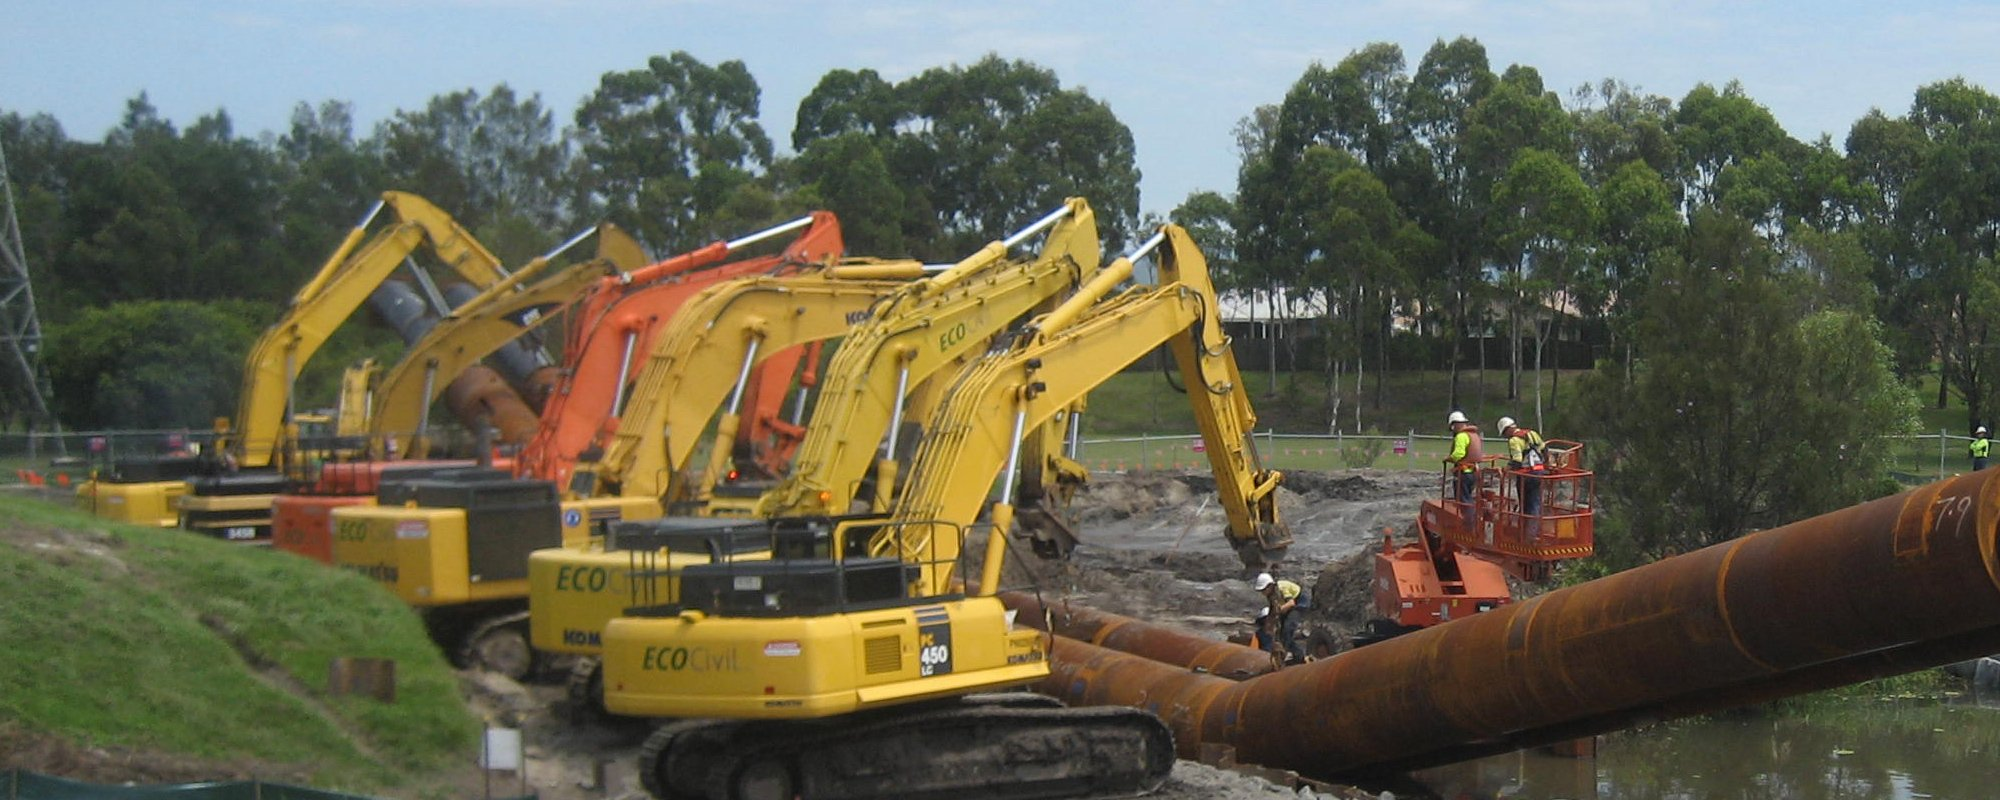 Machines being used at the project site